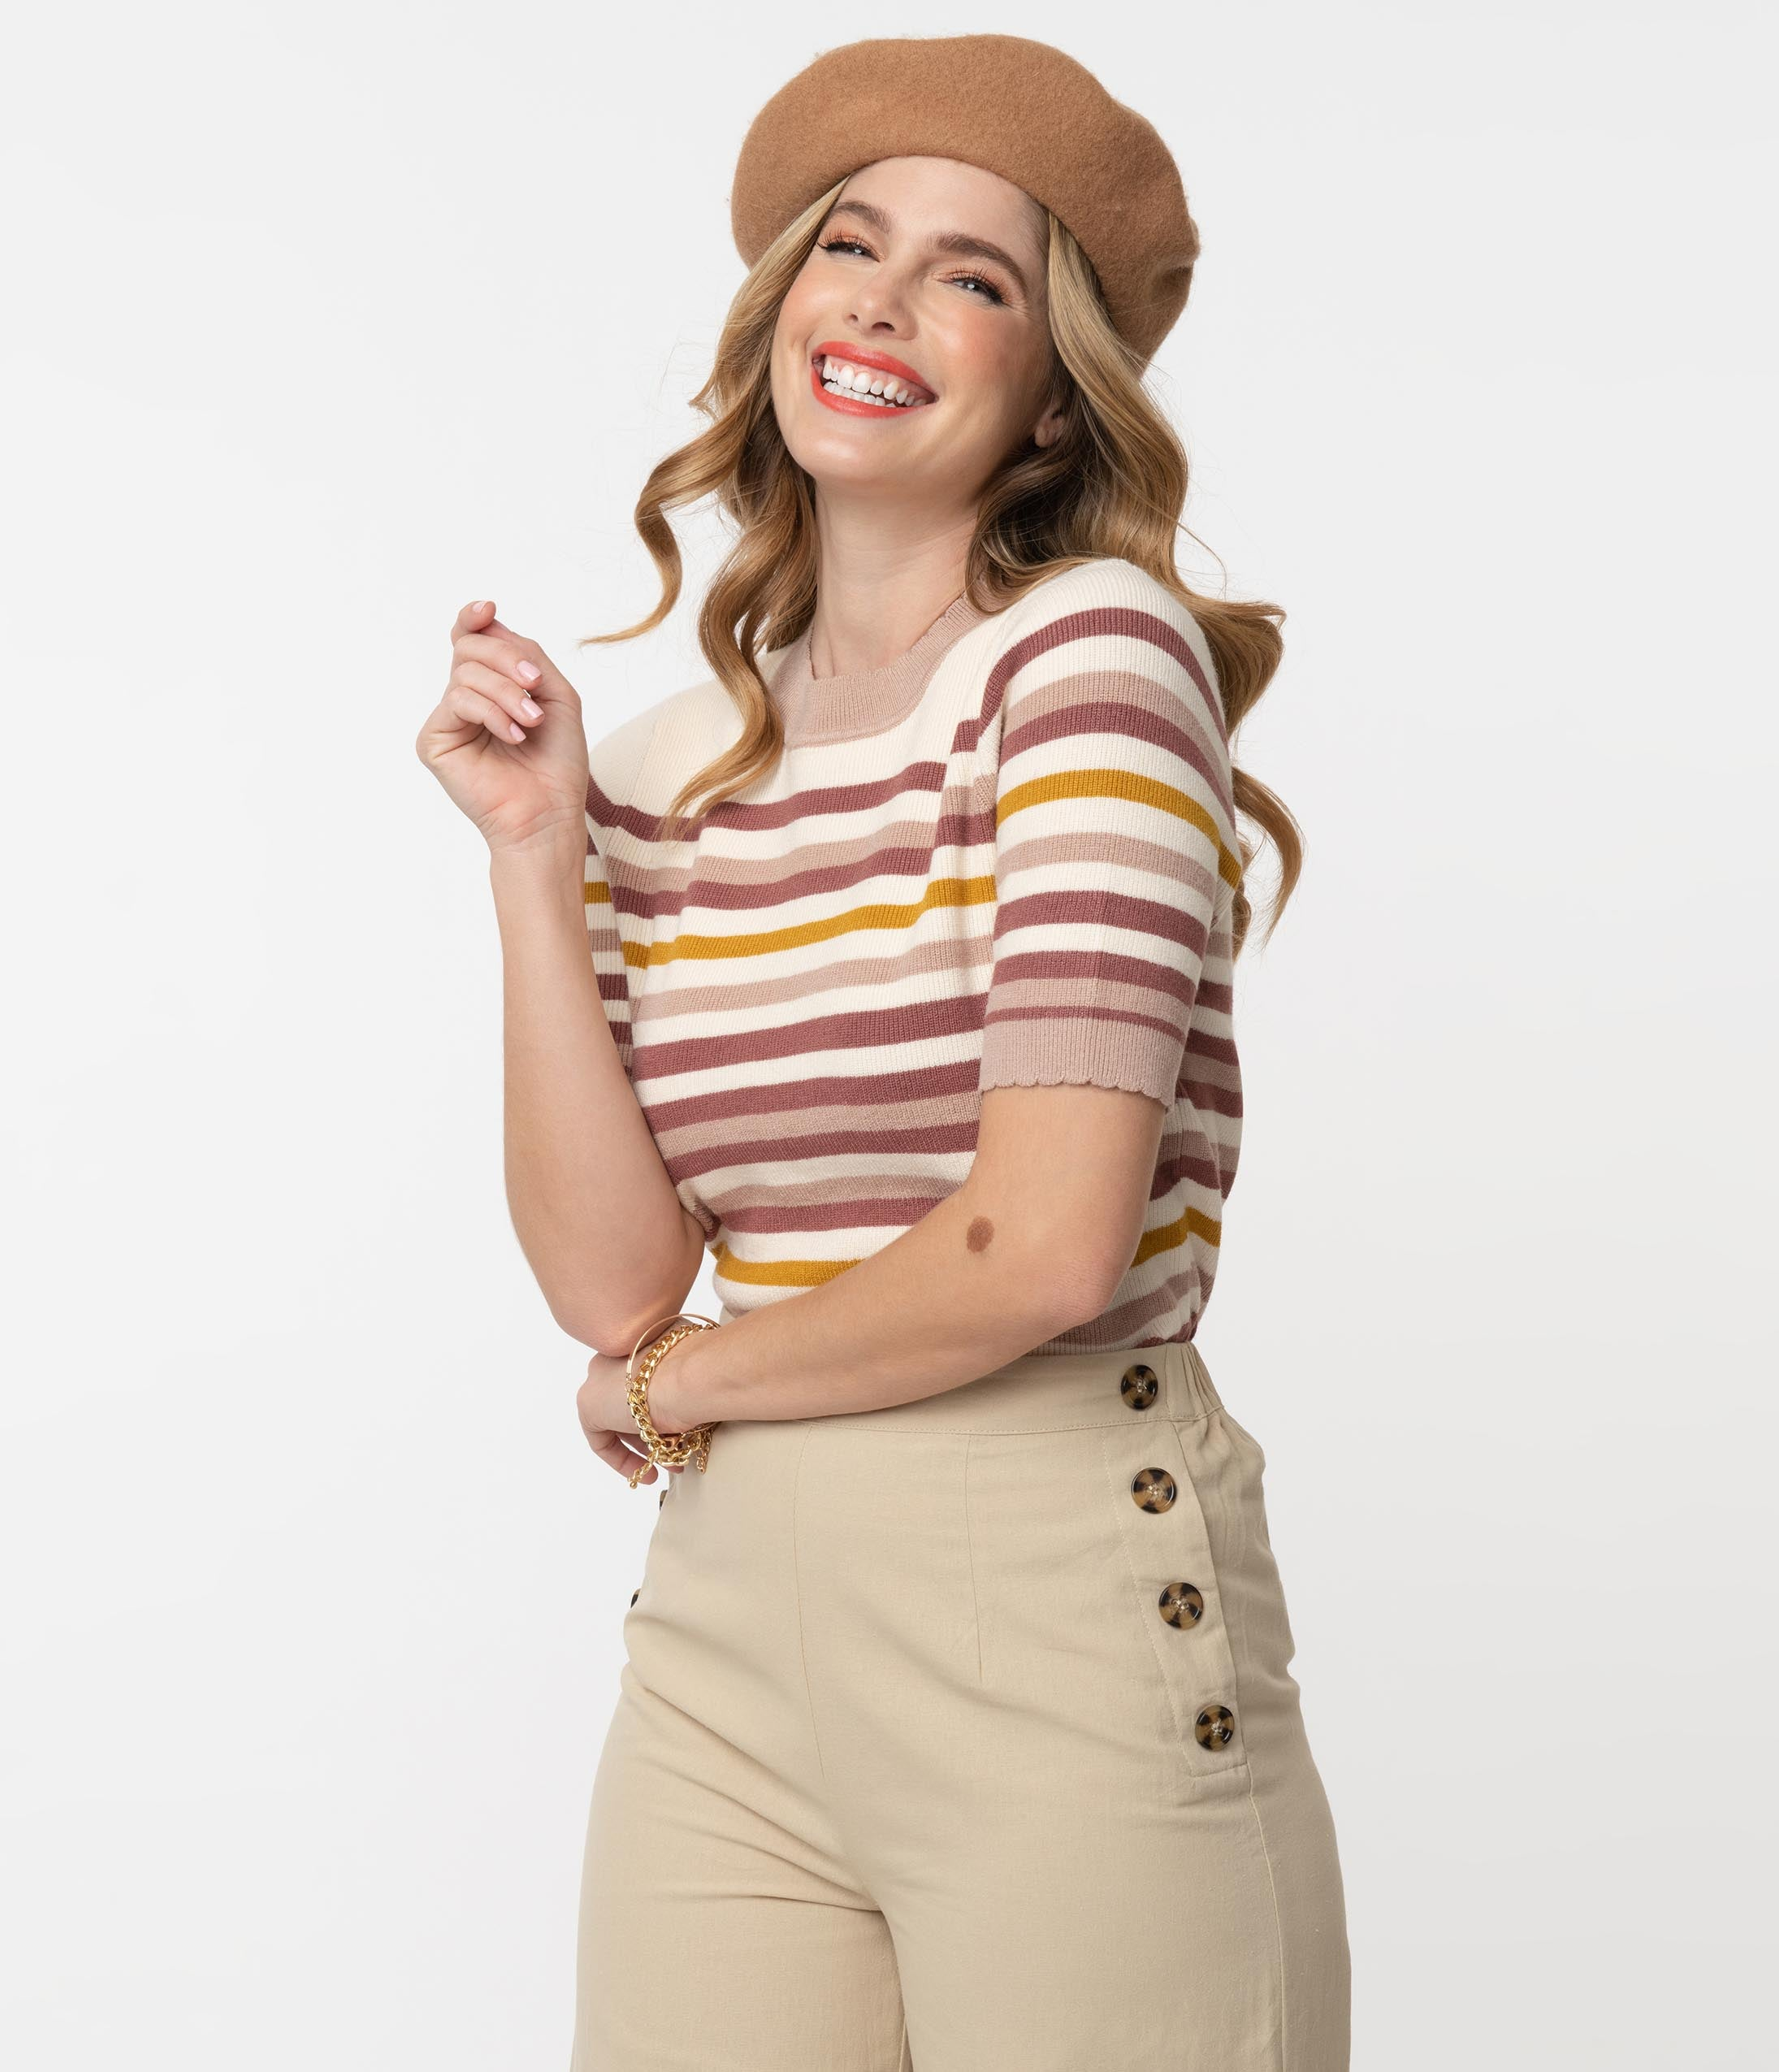 70s Outfits – 70s Style Ideas for Women 1970S Style Cream  Brown Stripe Sweater Top $58.00 AT vintagedancer.com